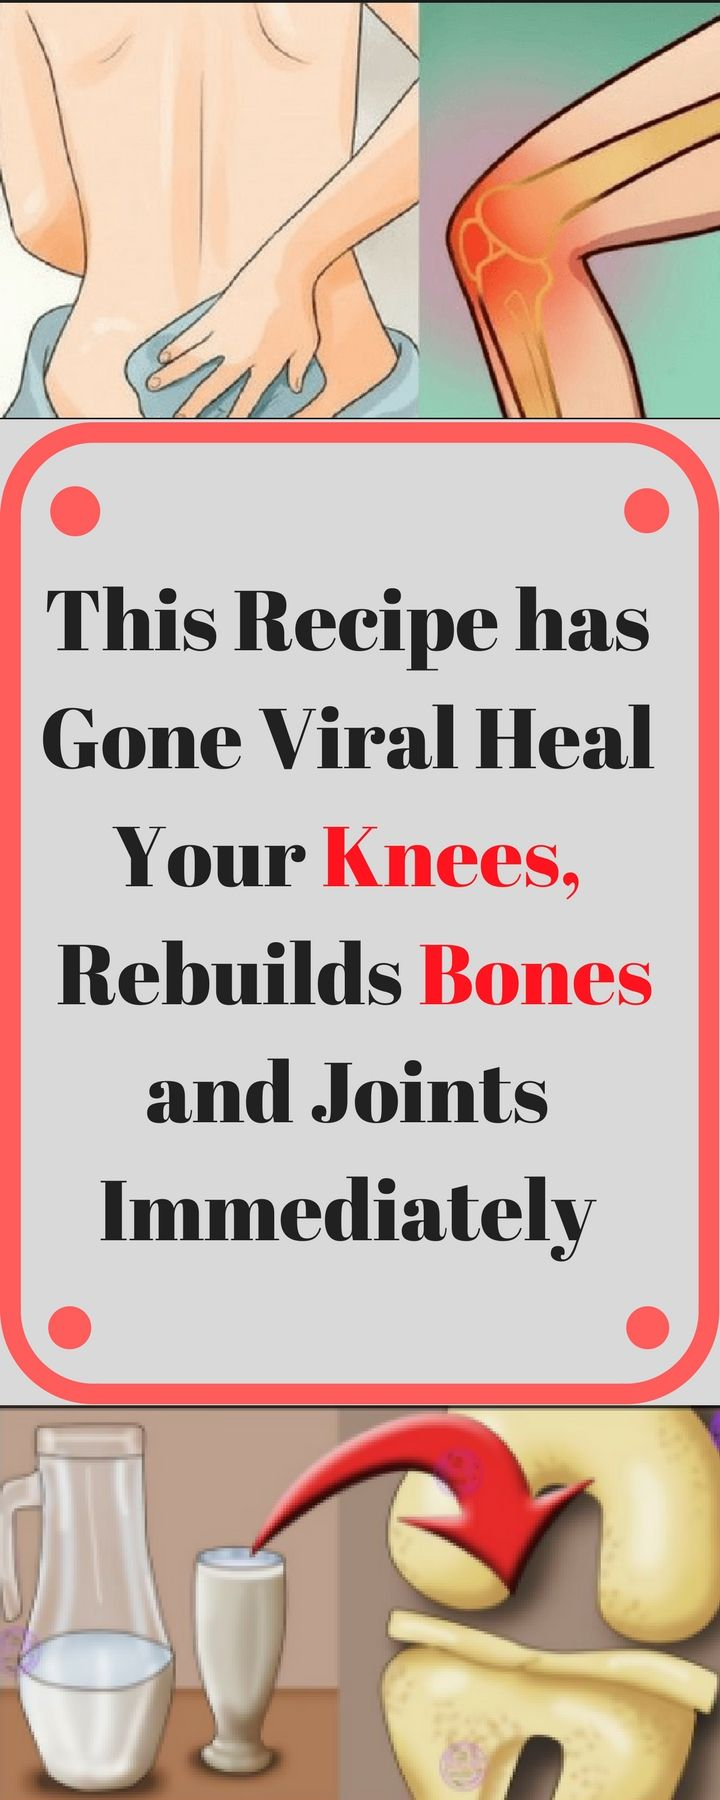 This Recipe has Gone Viral Heal Your Knees and Rebuilds Bones and Joints Immediately..!